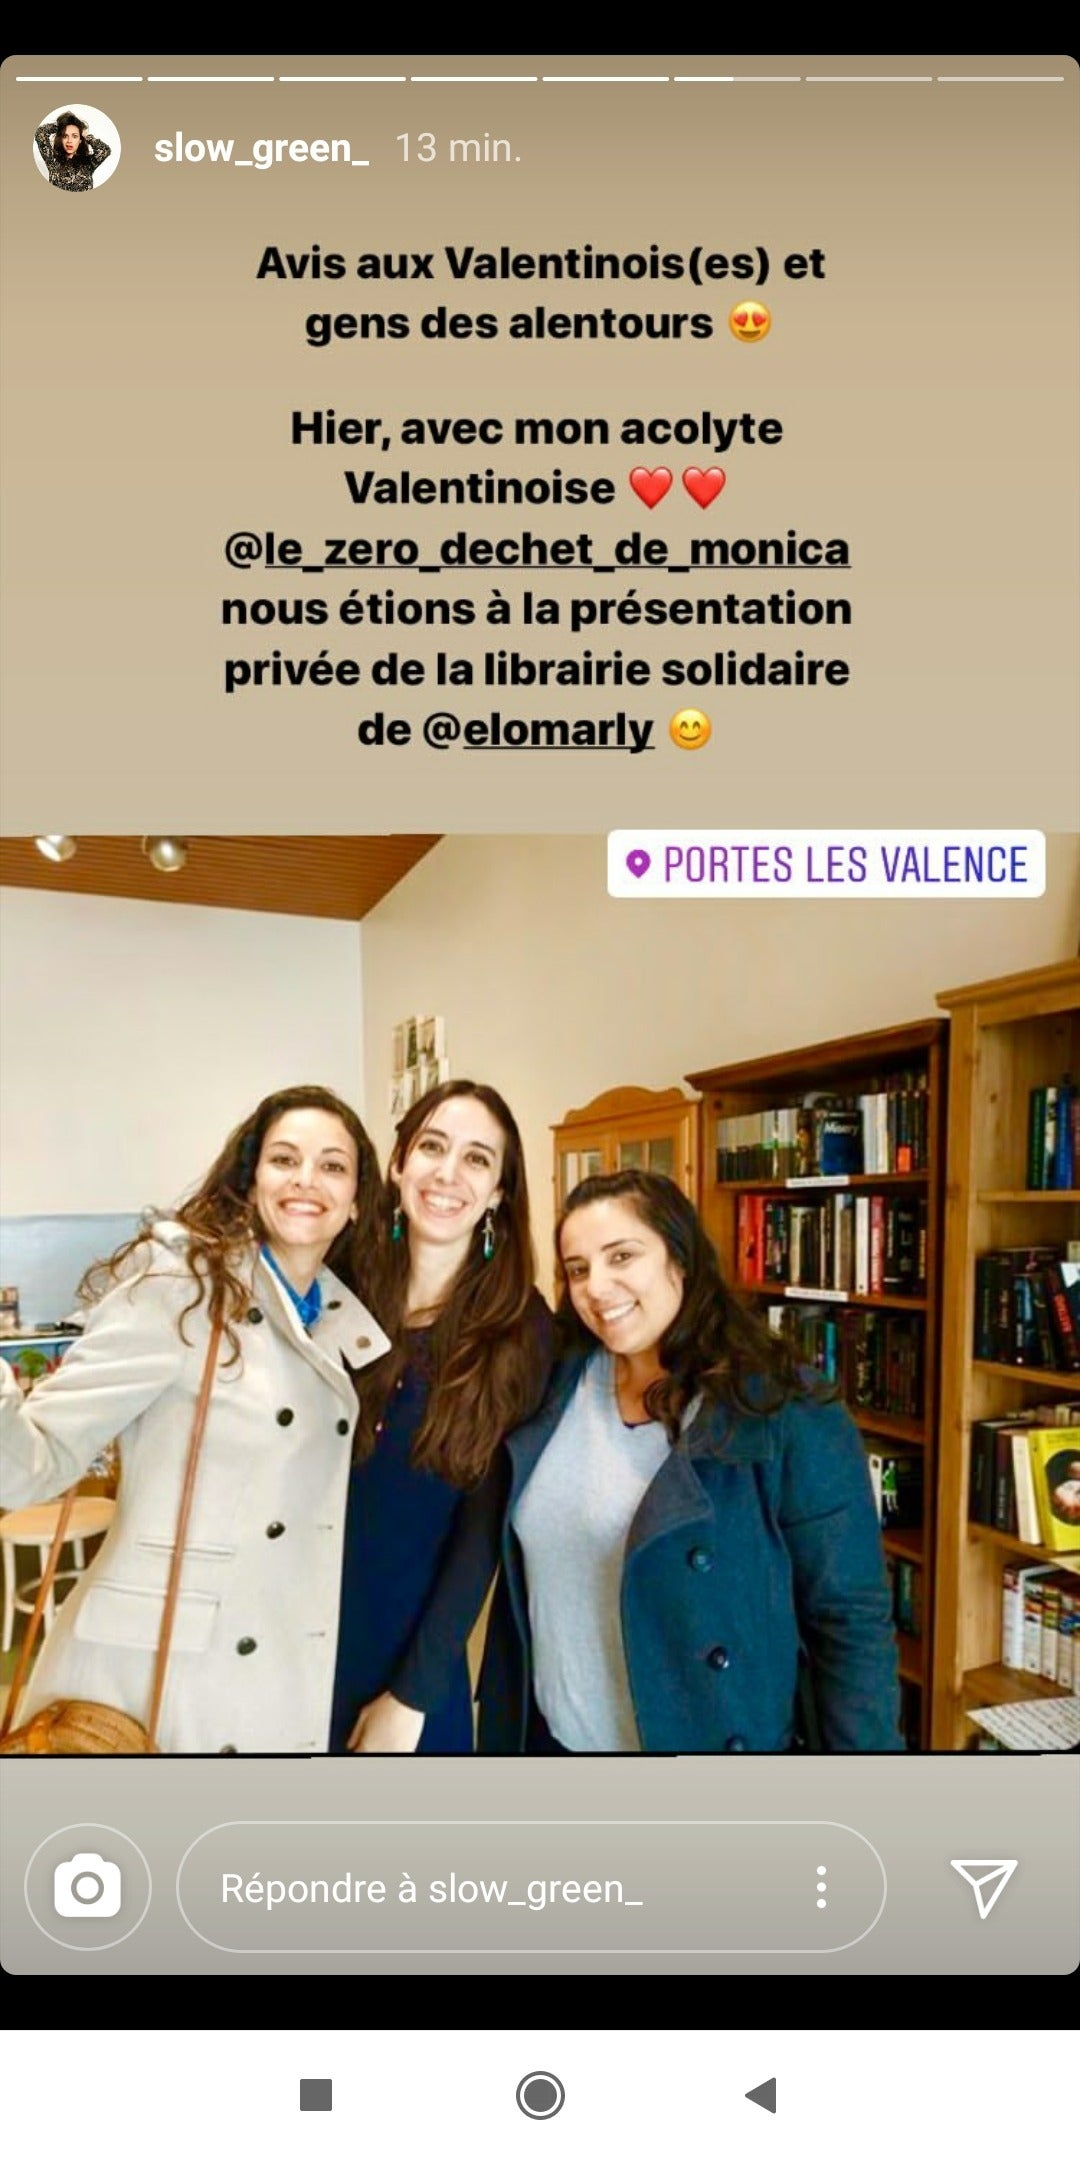 librairie solidaire equilivre